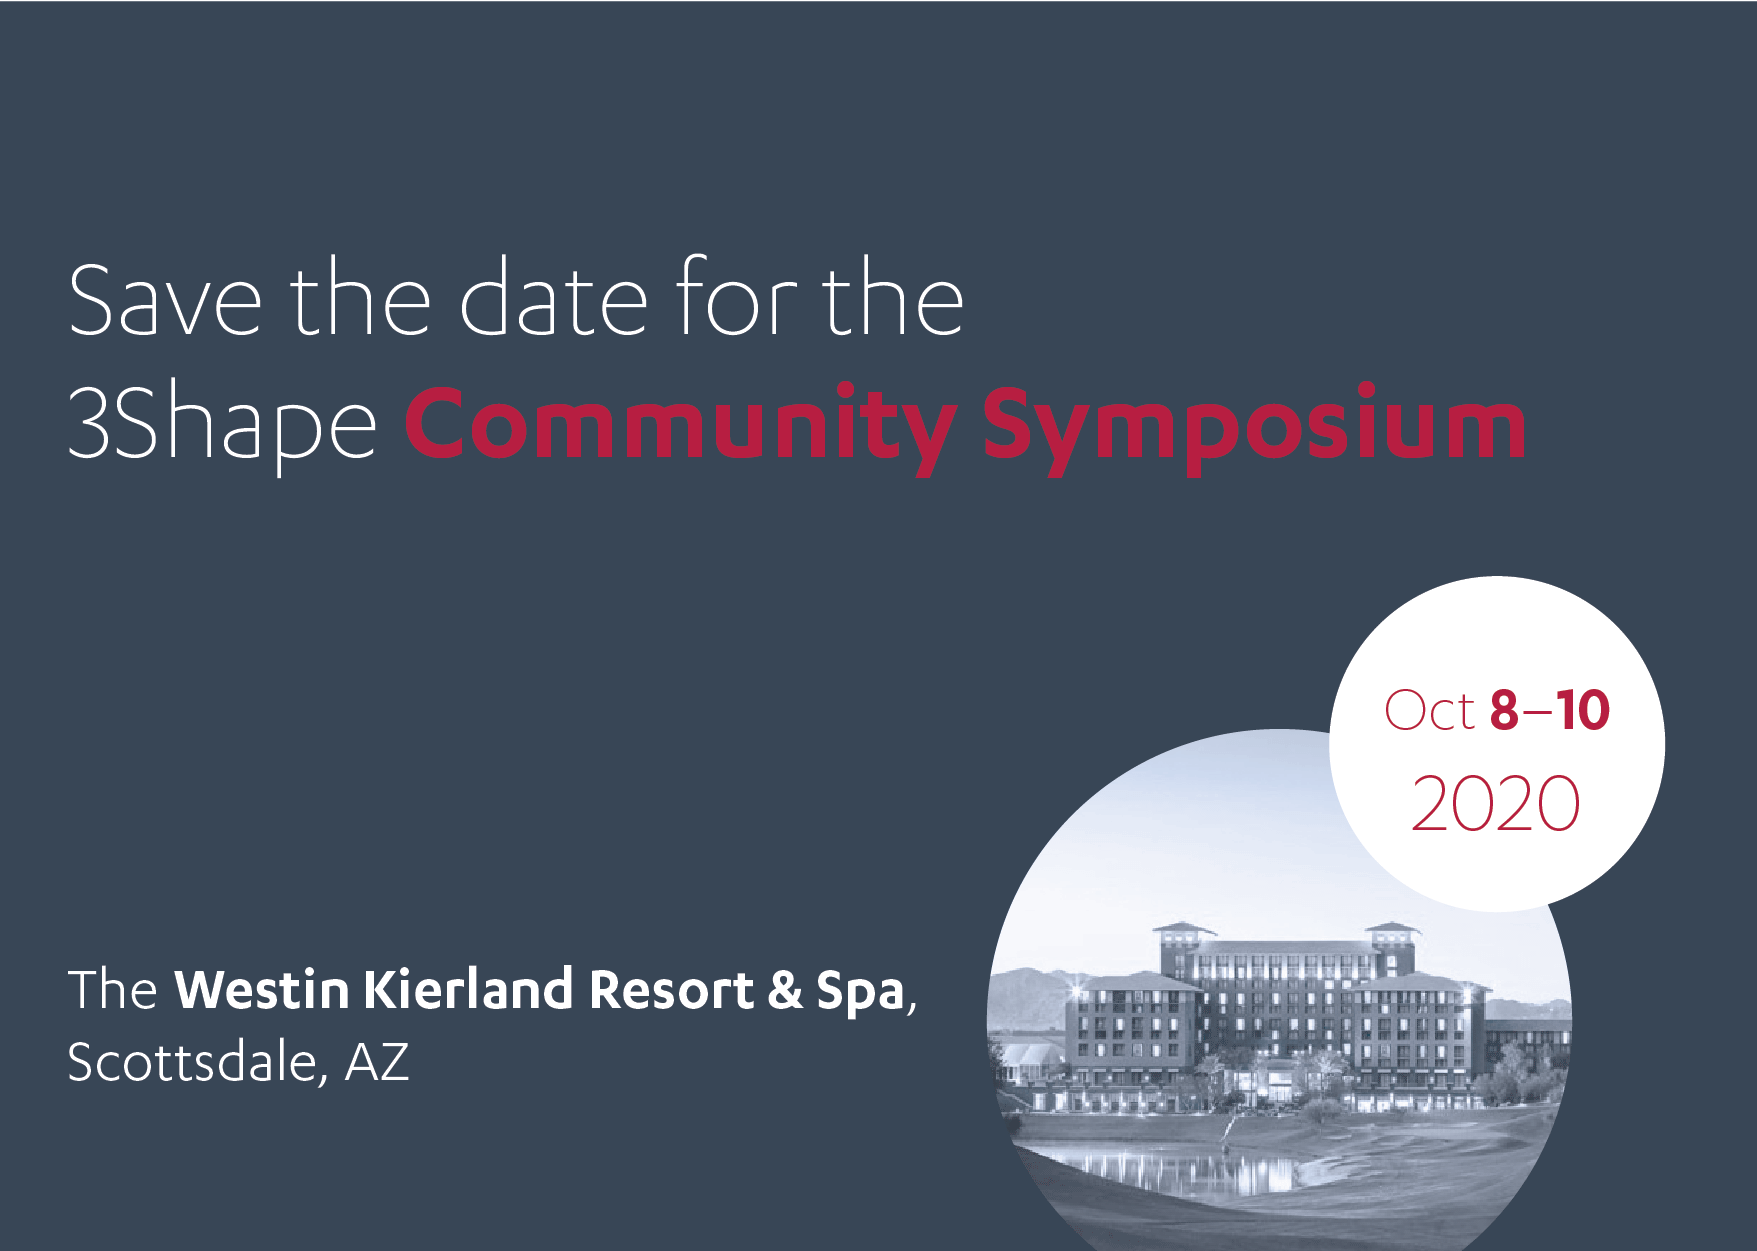 3shape Community 2020 Symposium